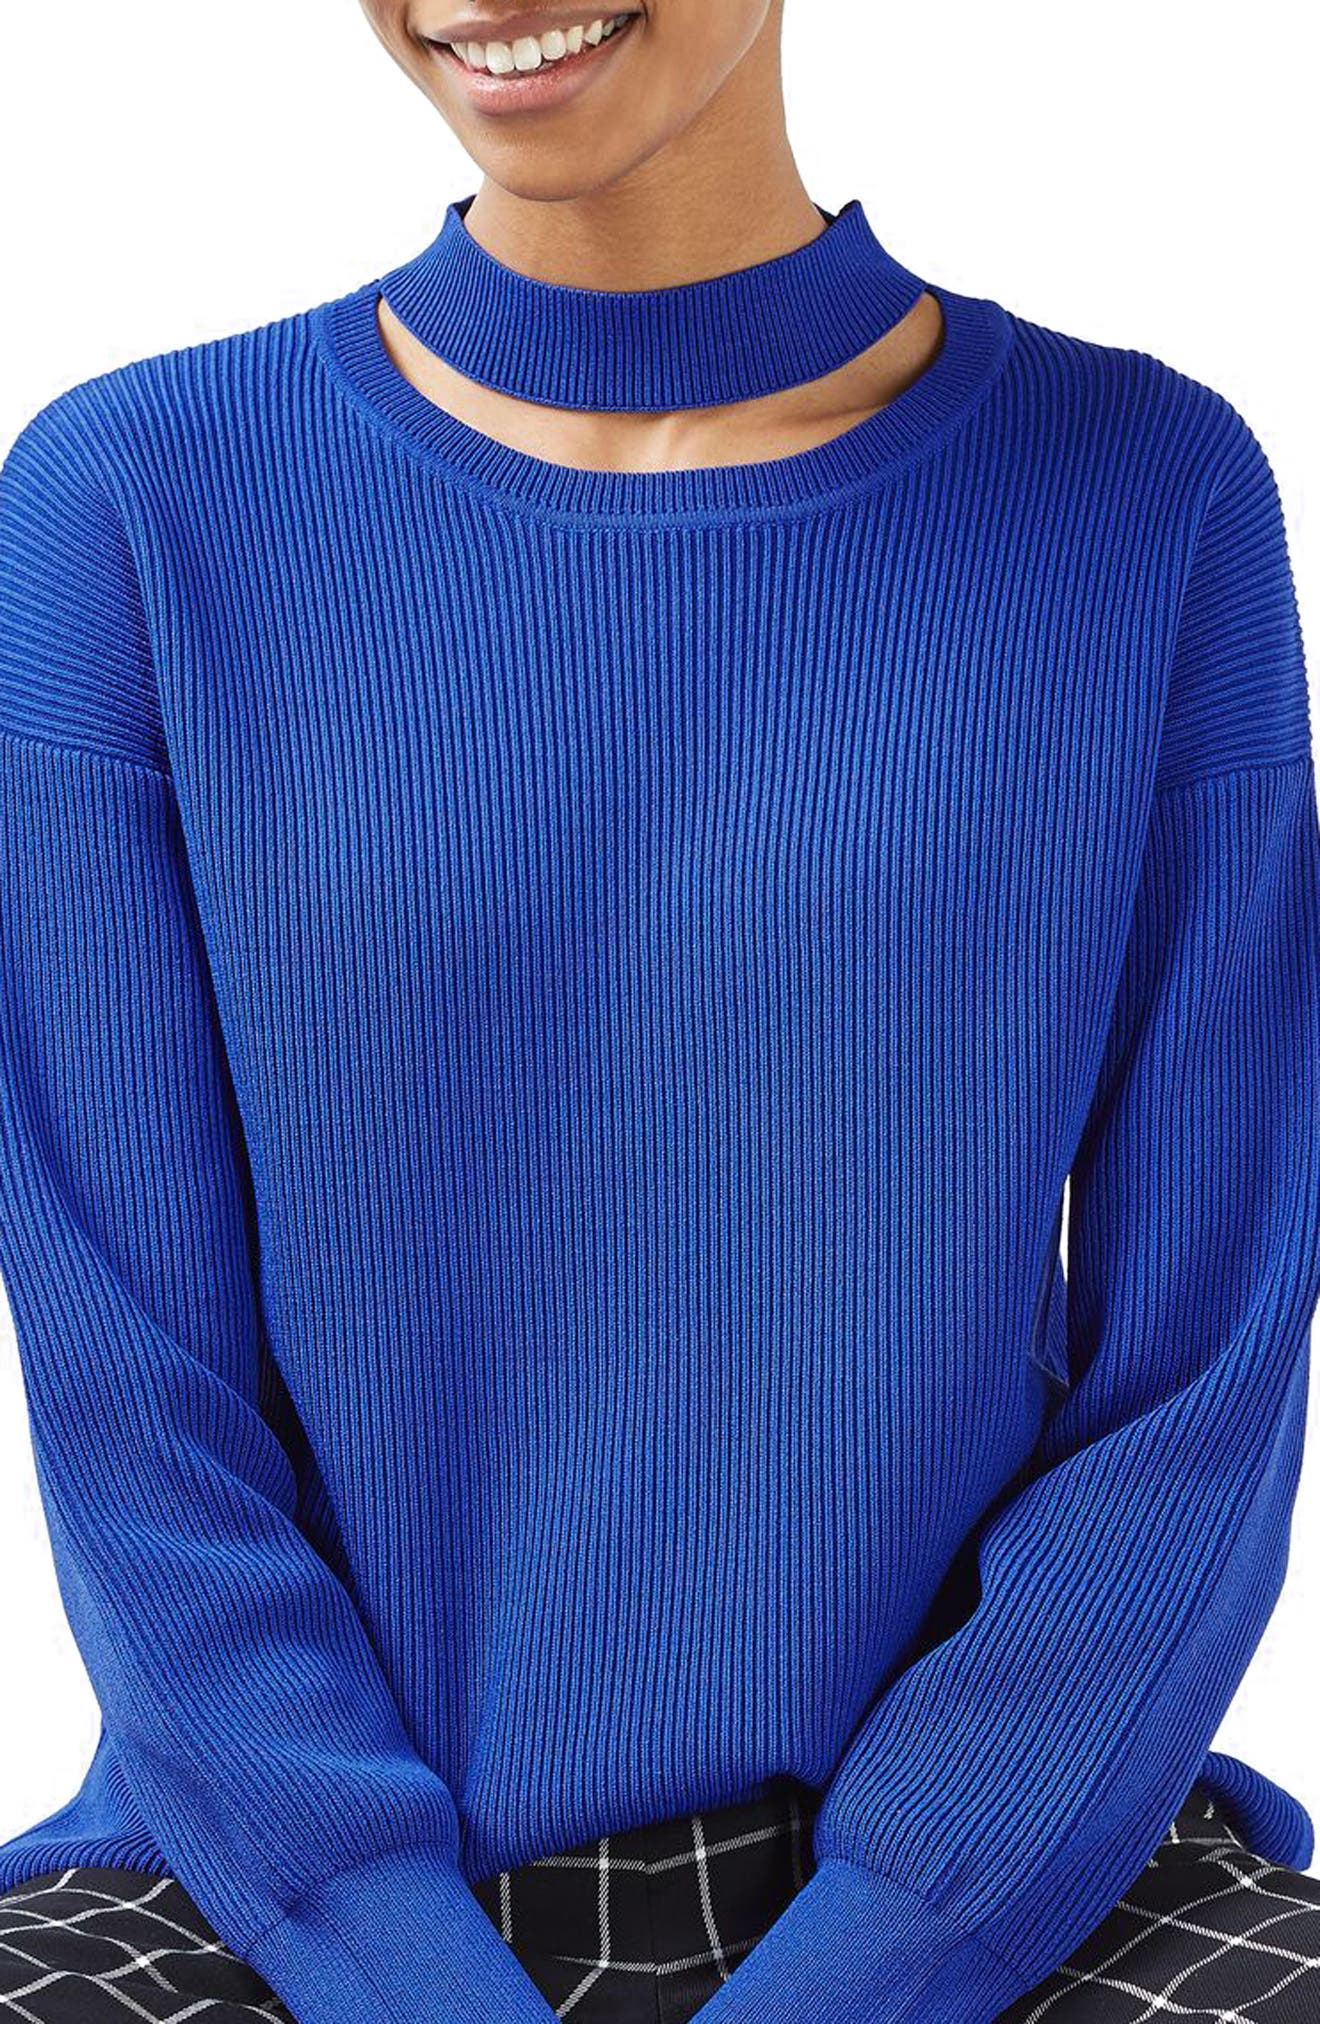 Alternate Image 1 Selected - Topshop Ribbed Choker Sweater